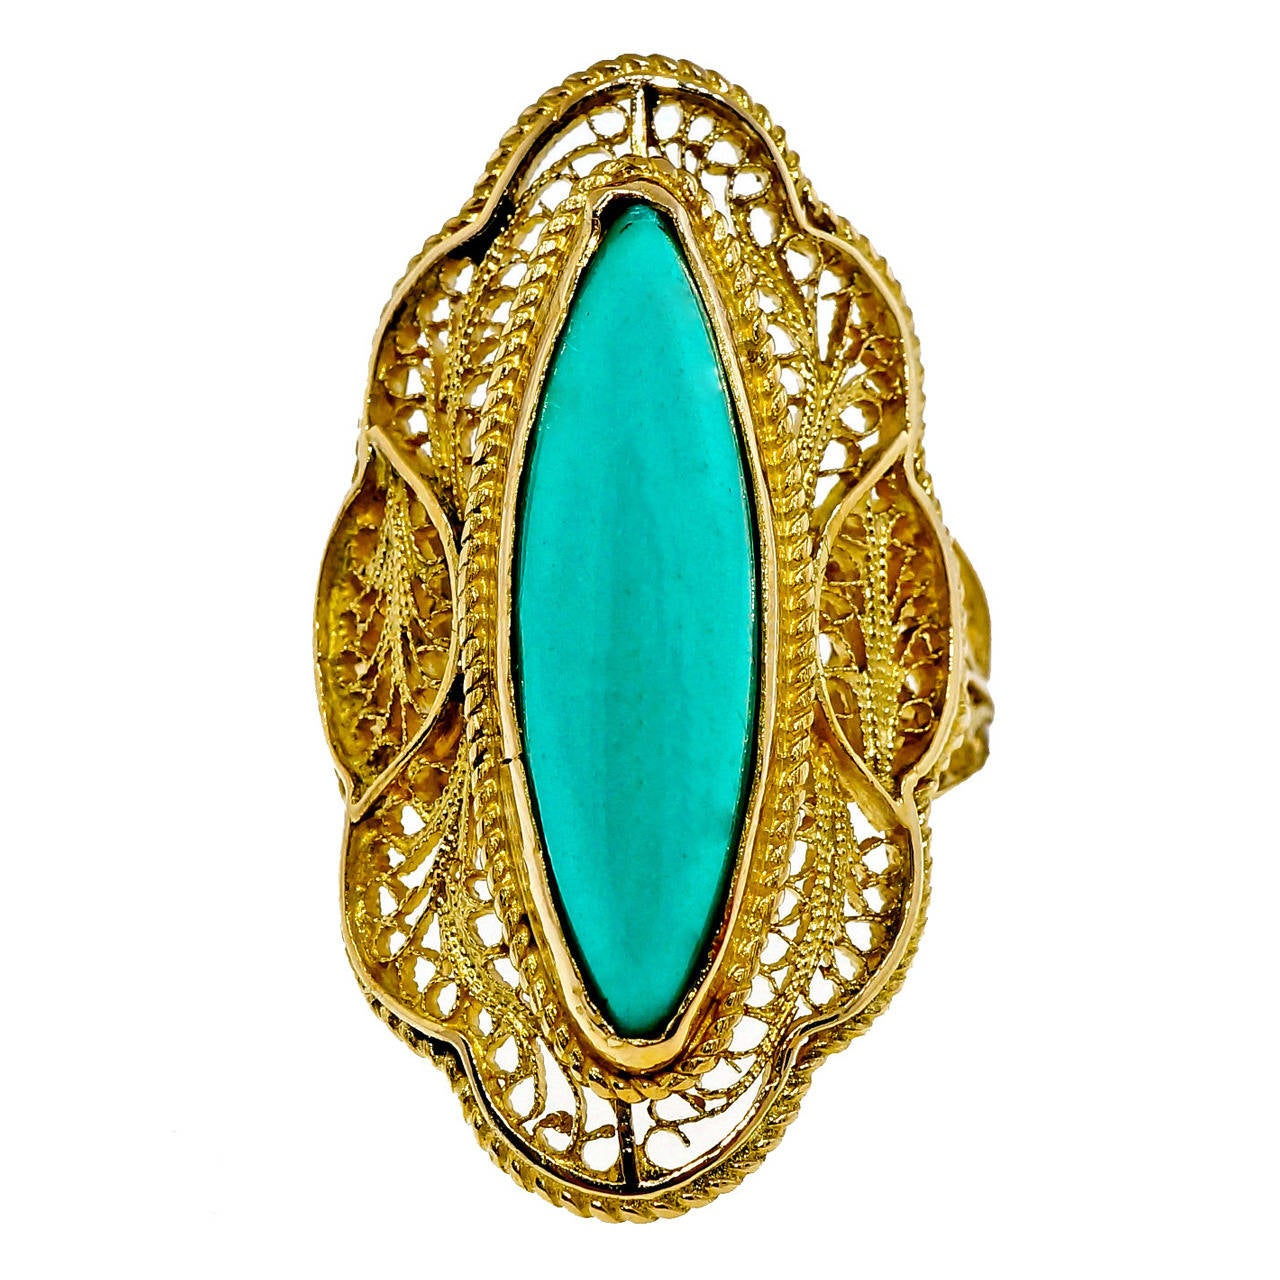 marquise turquoise gold filigree ring at 1stdibs